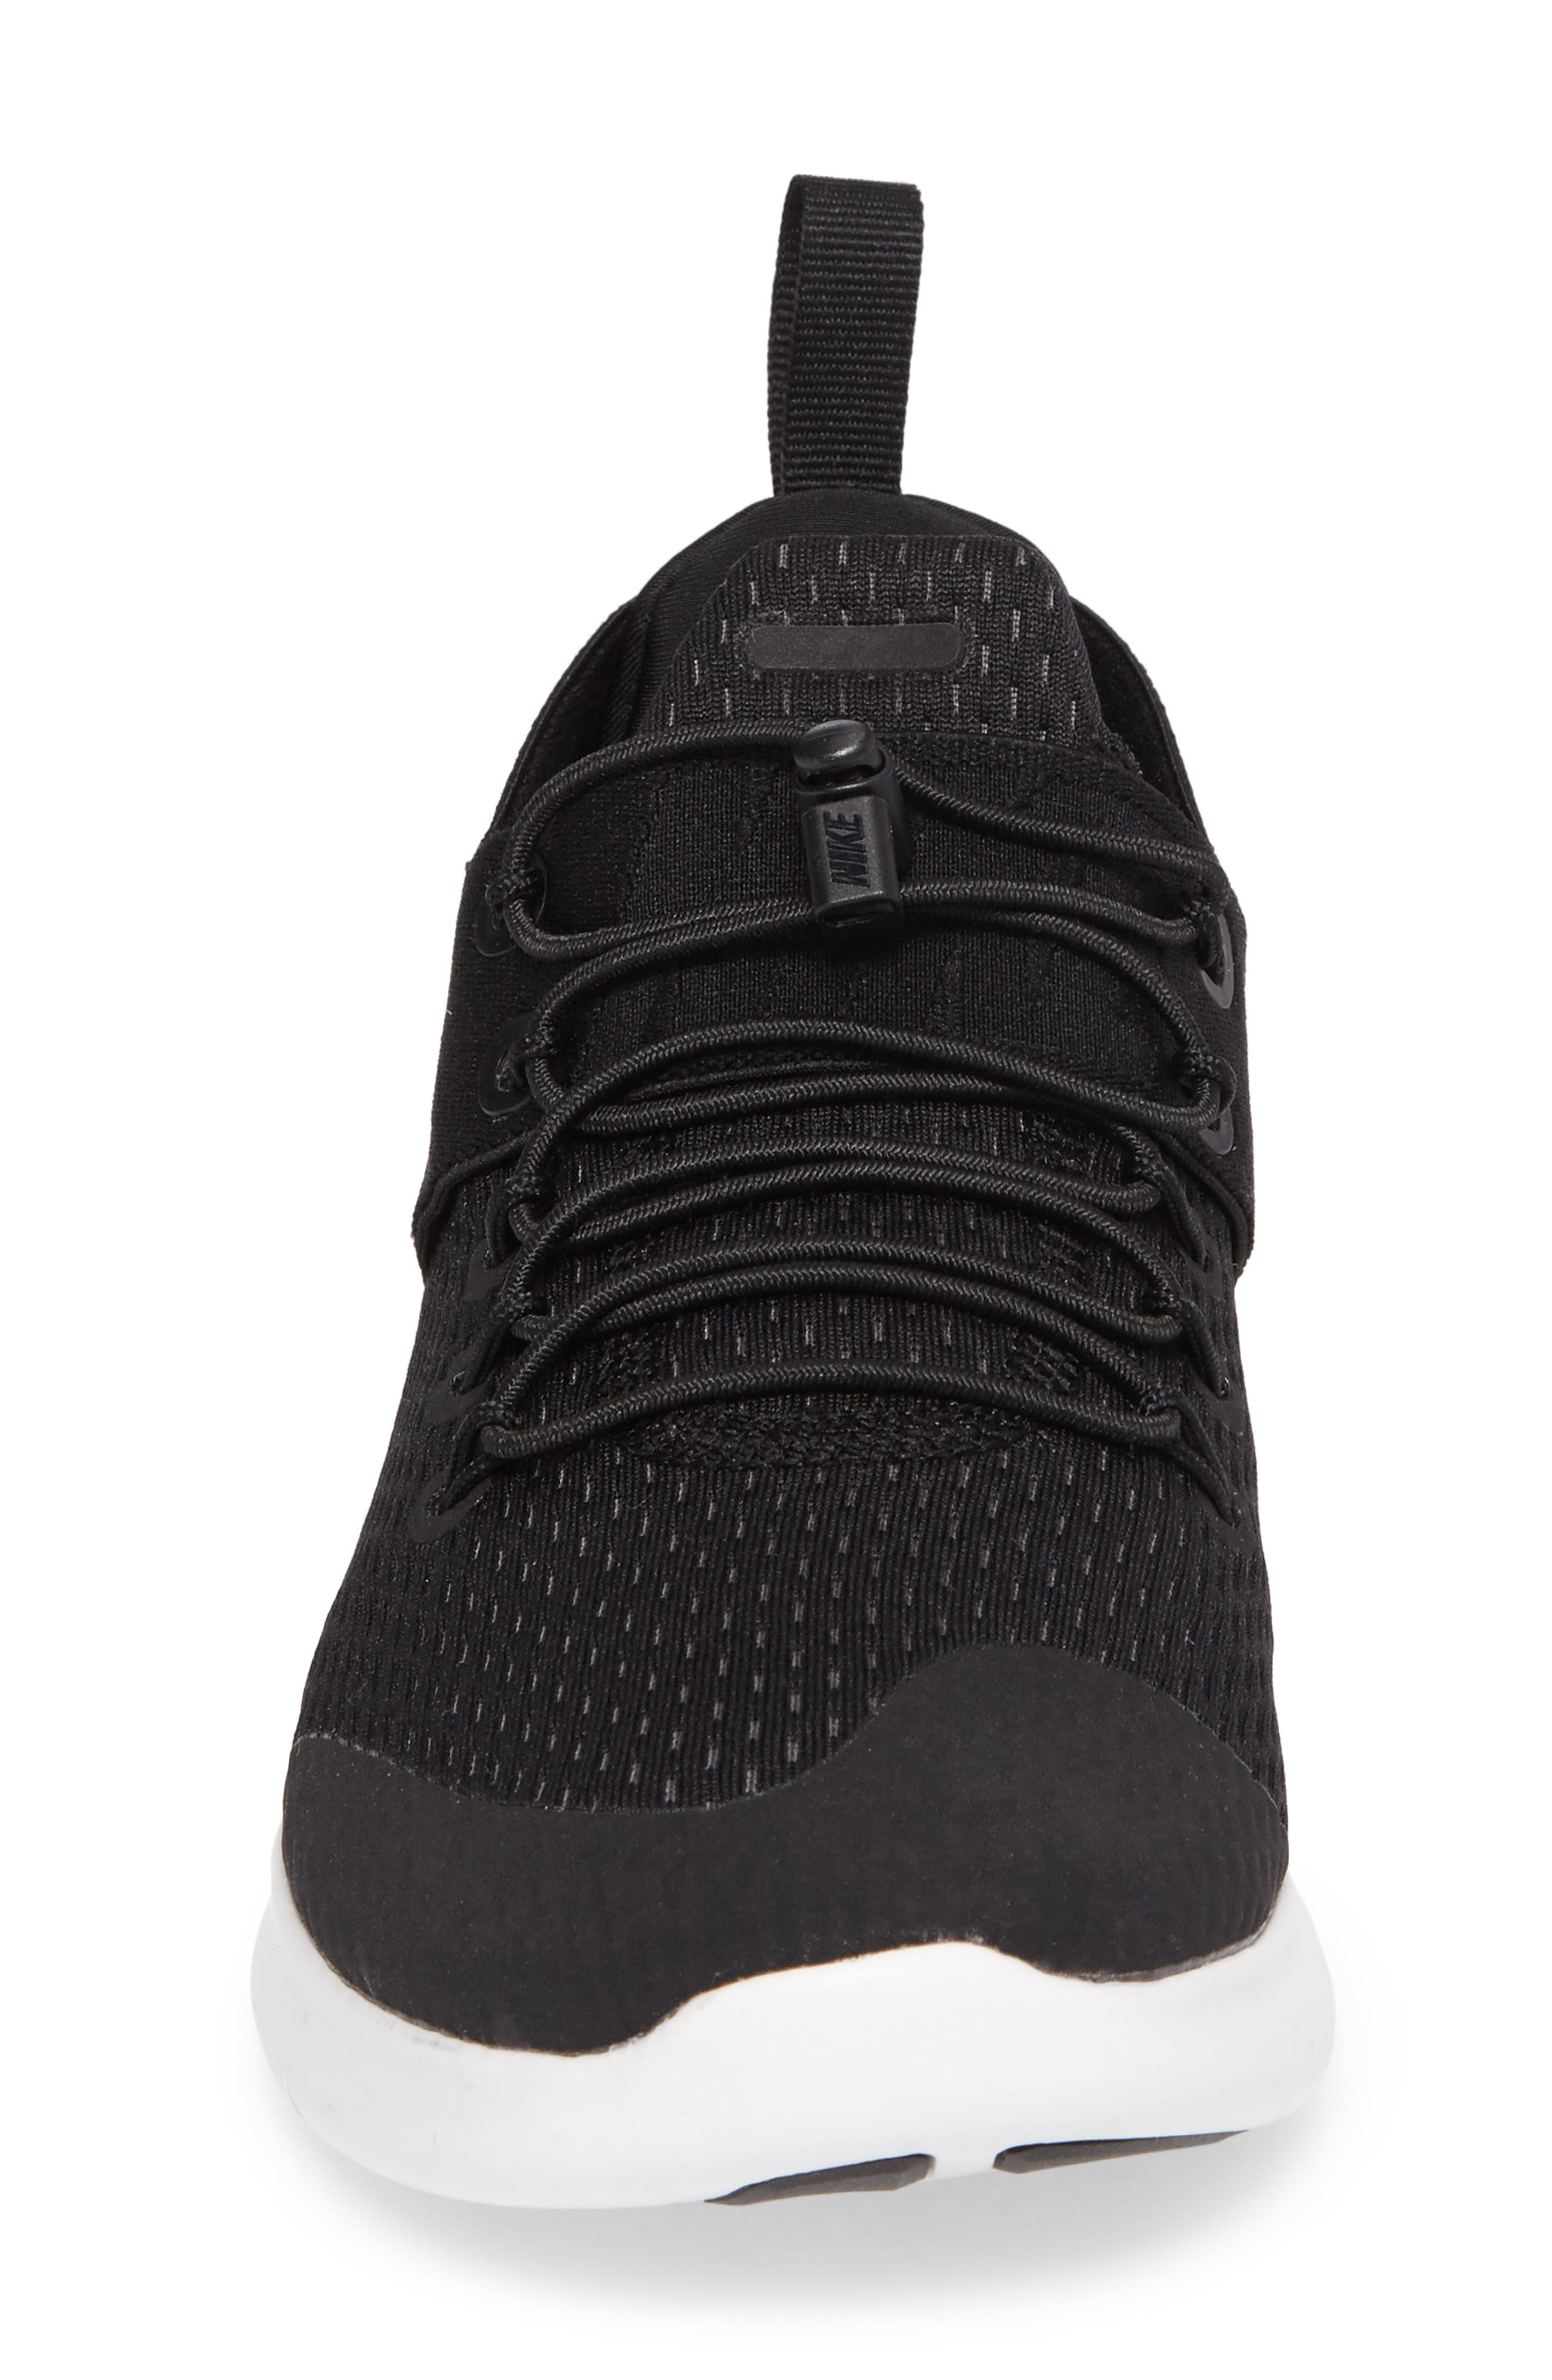 Free RN CMTR Running Shoe,                             Alternate thumbnail 4, color,                             Black/ Anthracite/ Off White